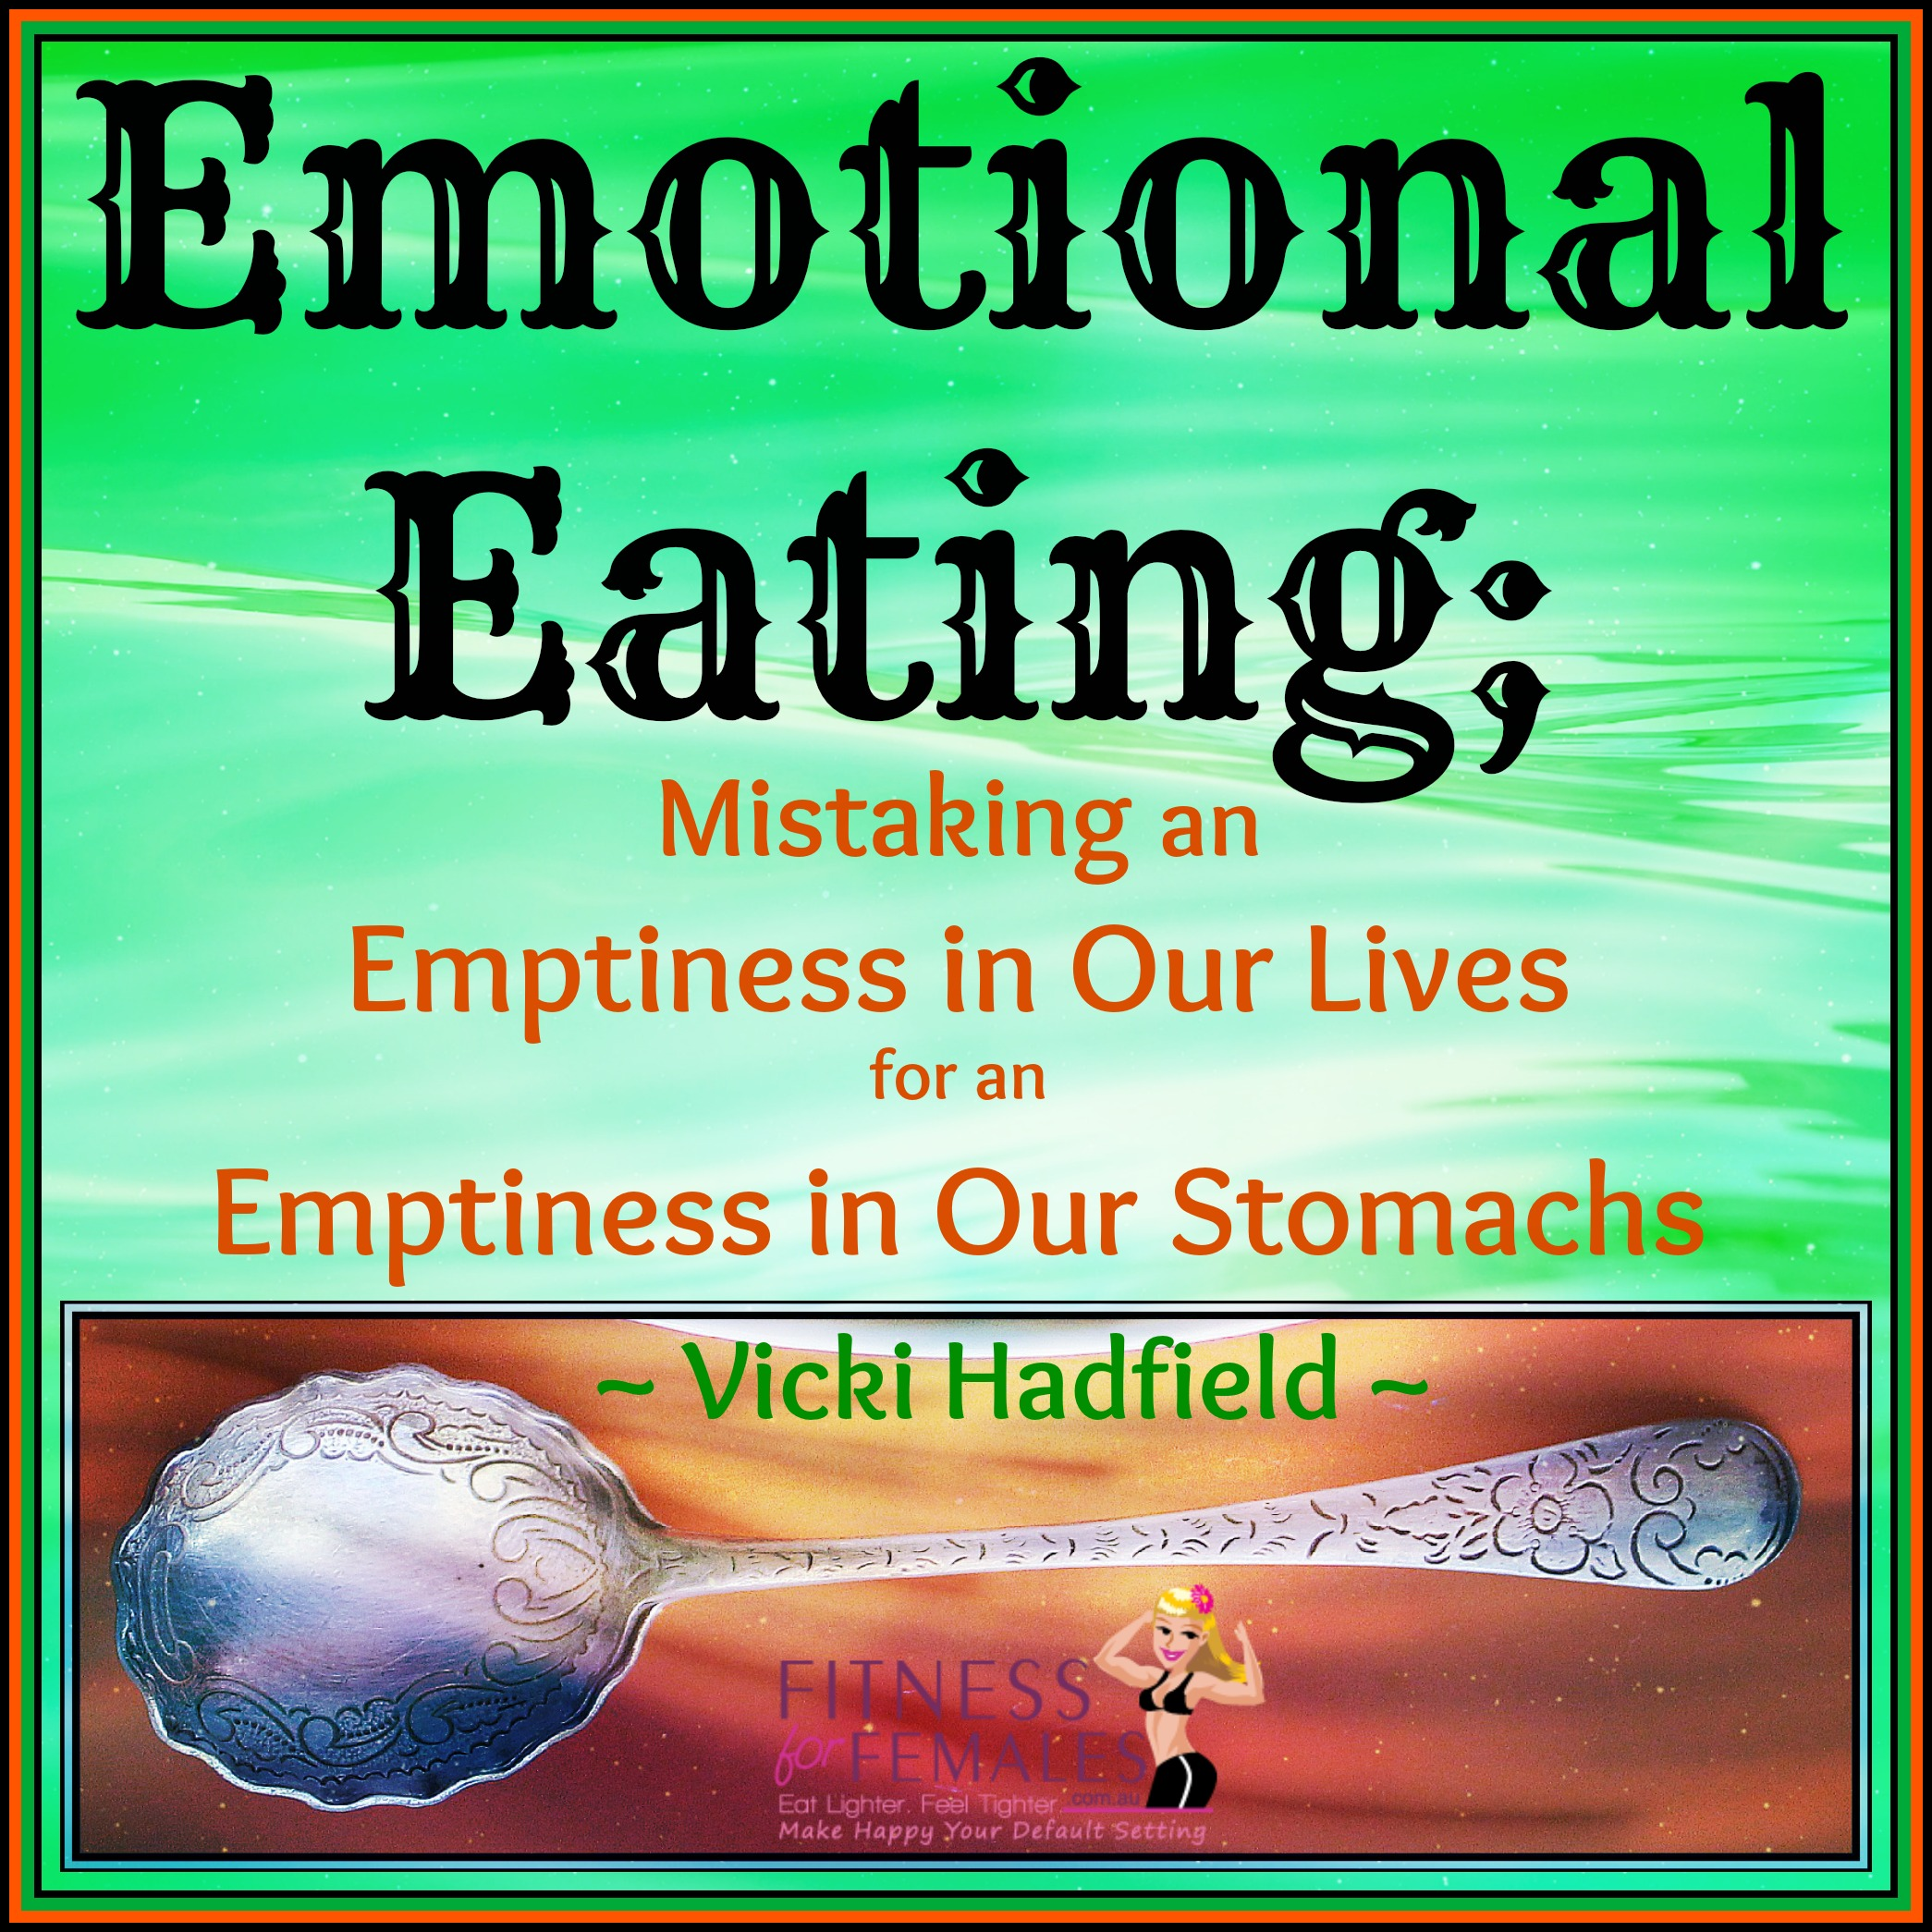 Emotional Eating Spoon